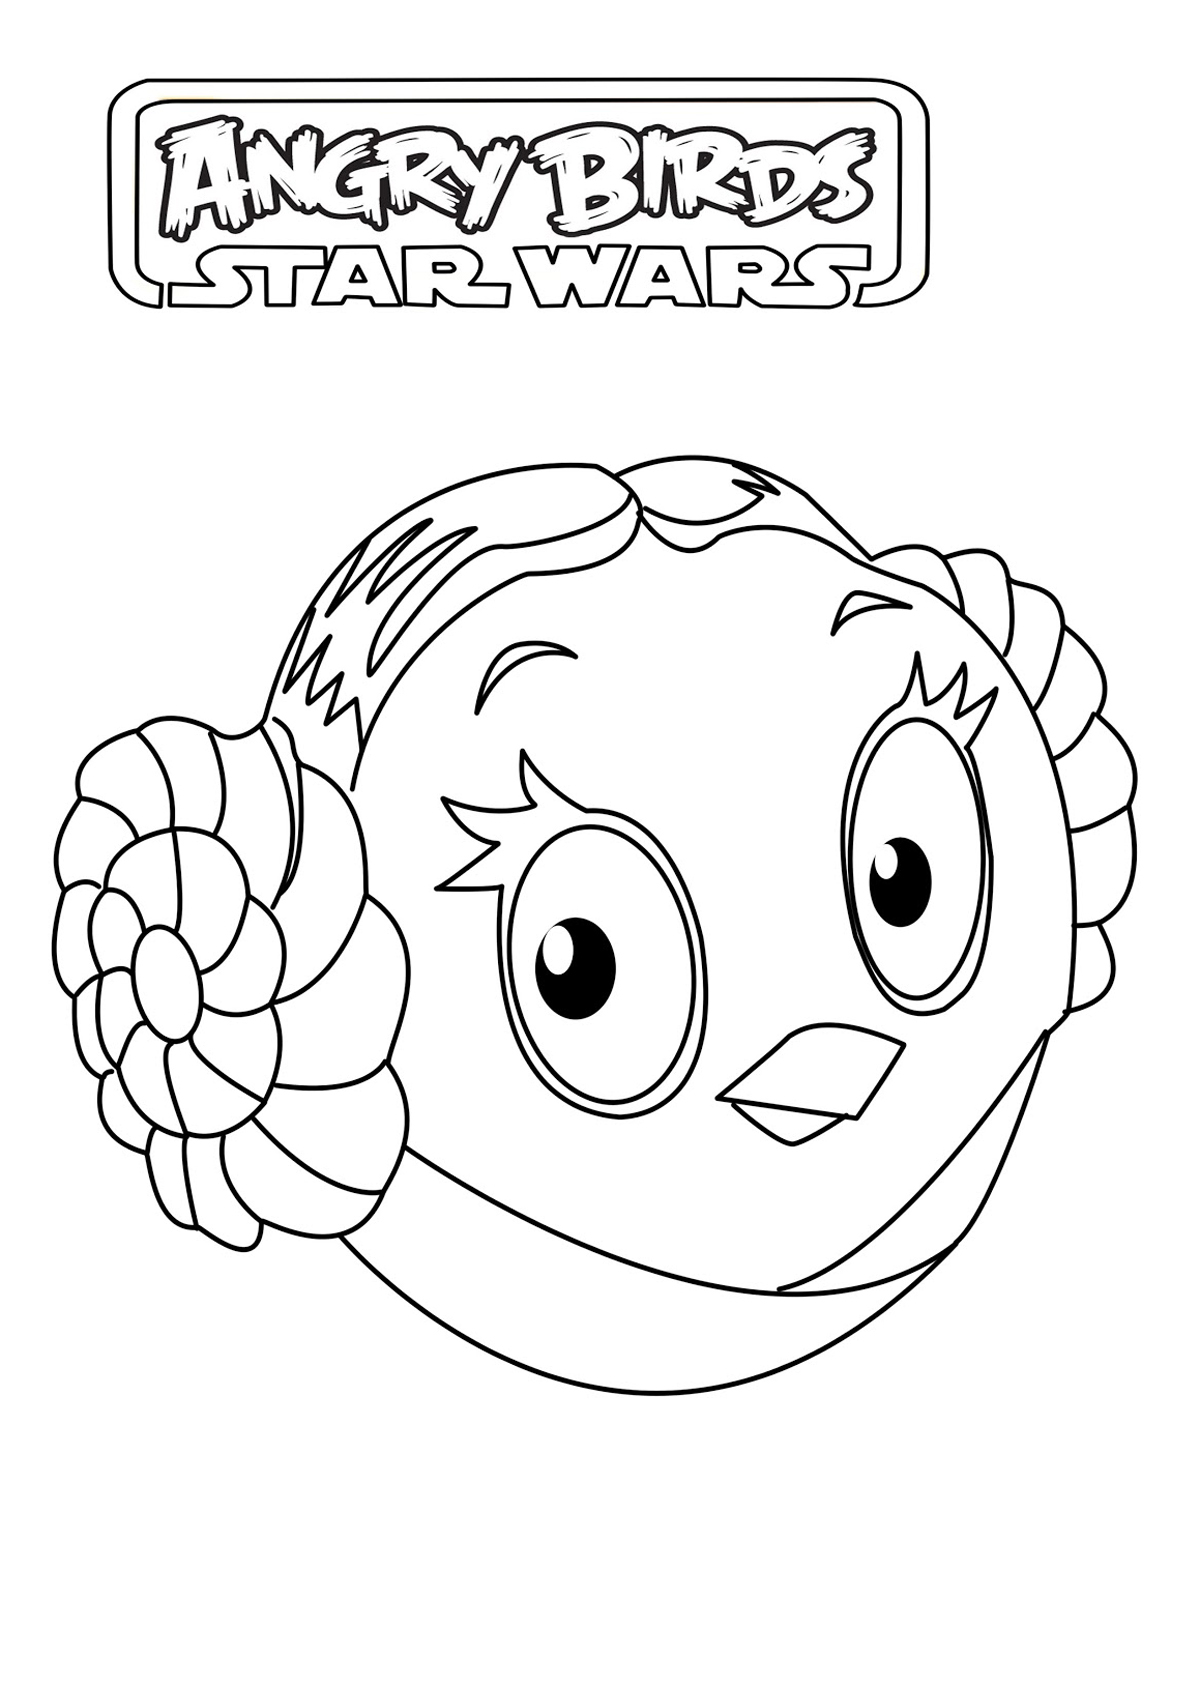 Angry birds star wars free to color for children - Angry Birds Star ...